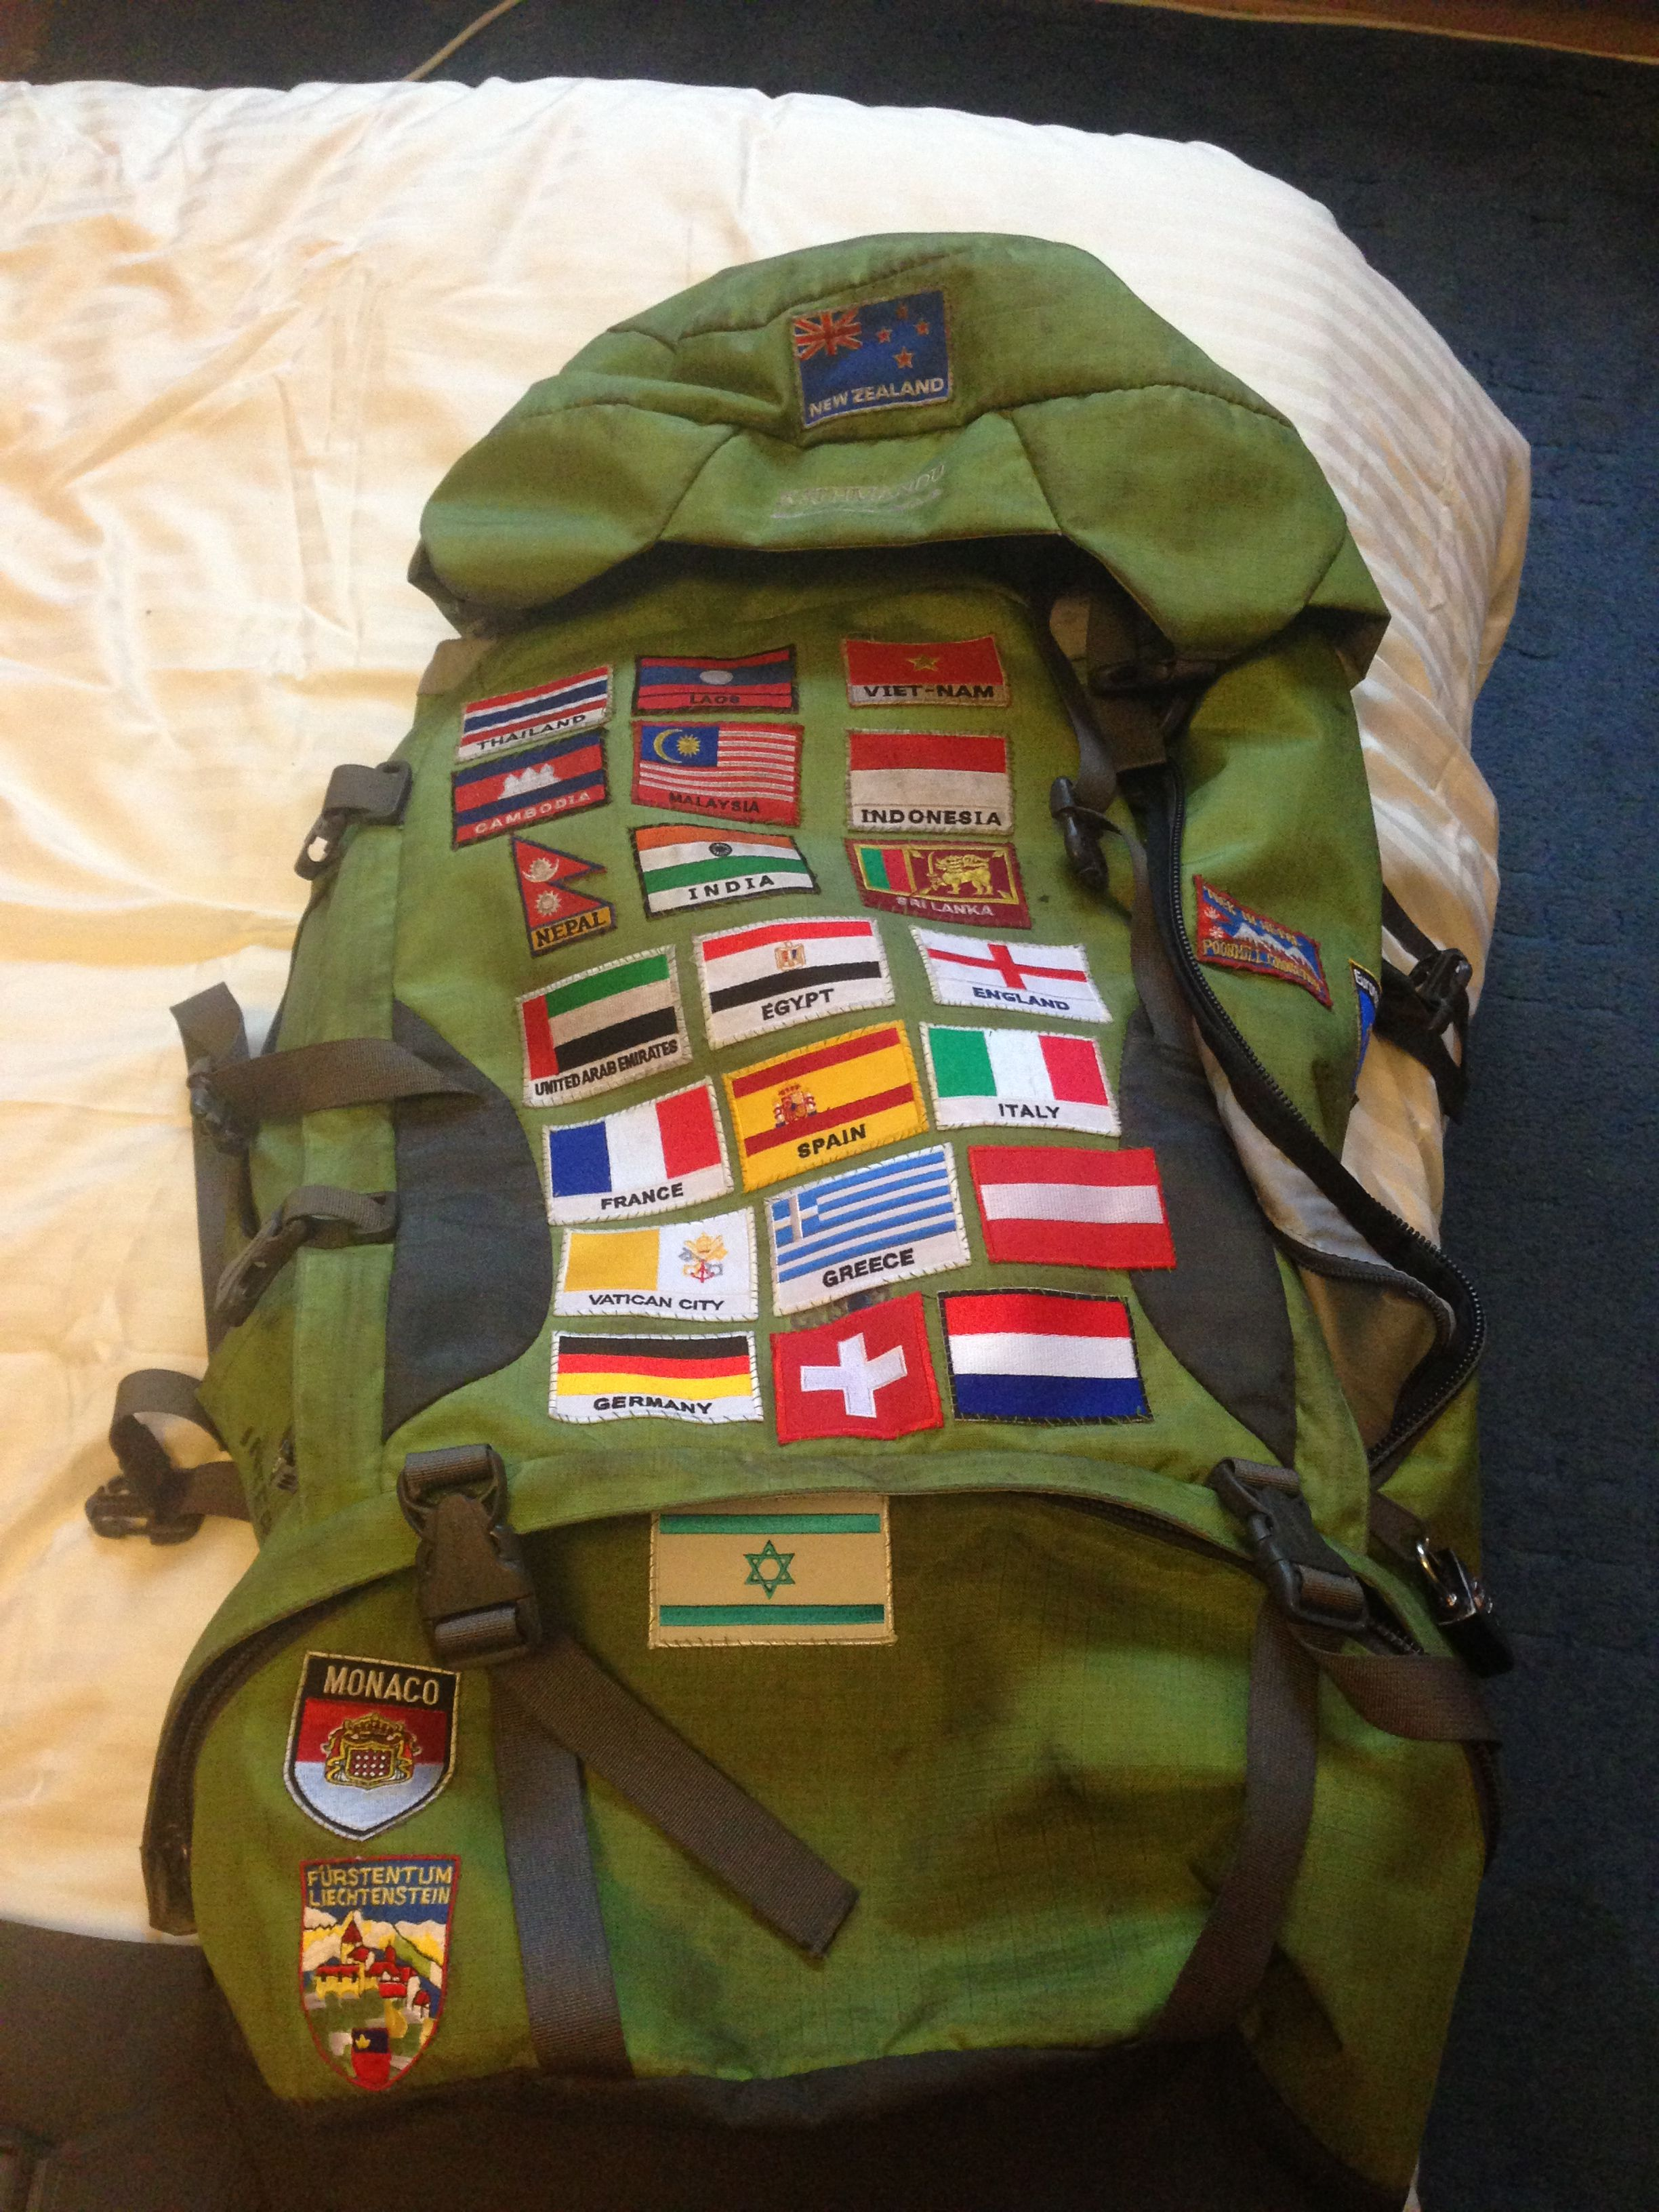 Sew patches on to your backpack in every country you go to if you